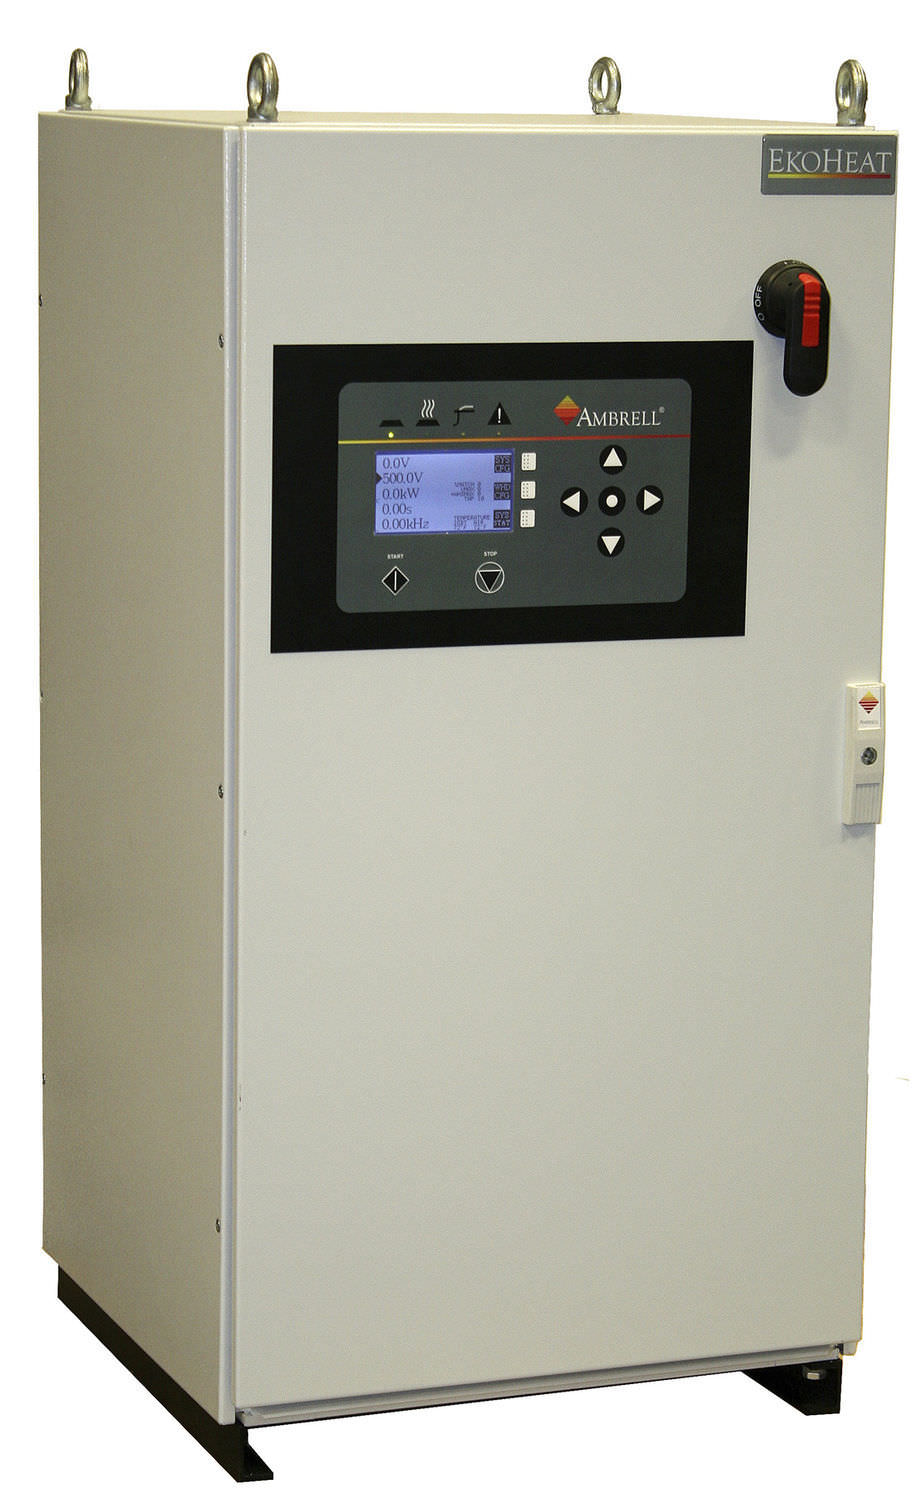 EKOHEAT 75/30 Heat treatment induction heater 75 kW, 15 – 40 kHz